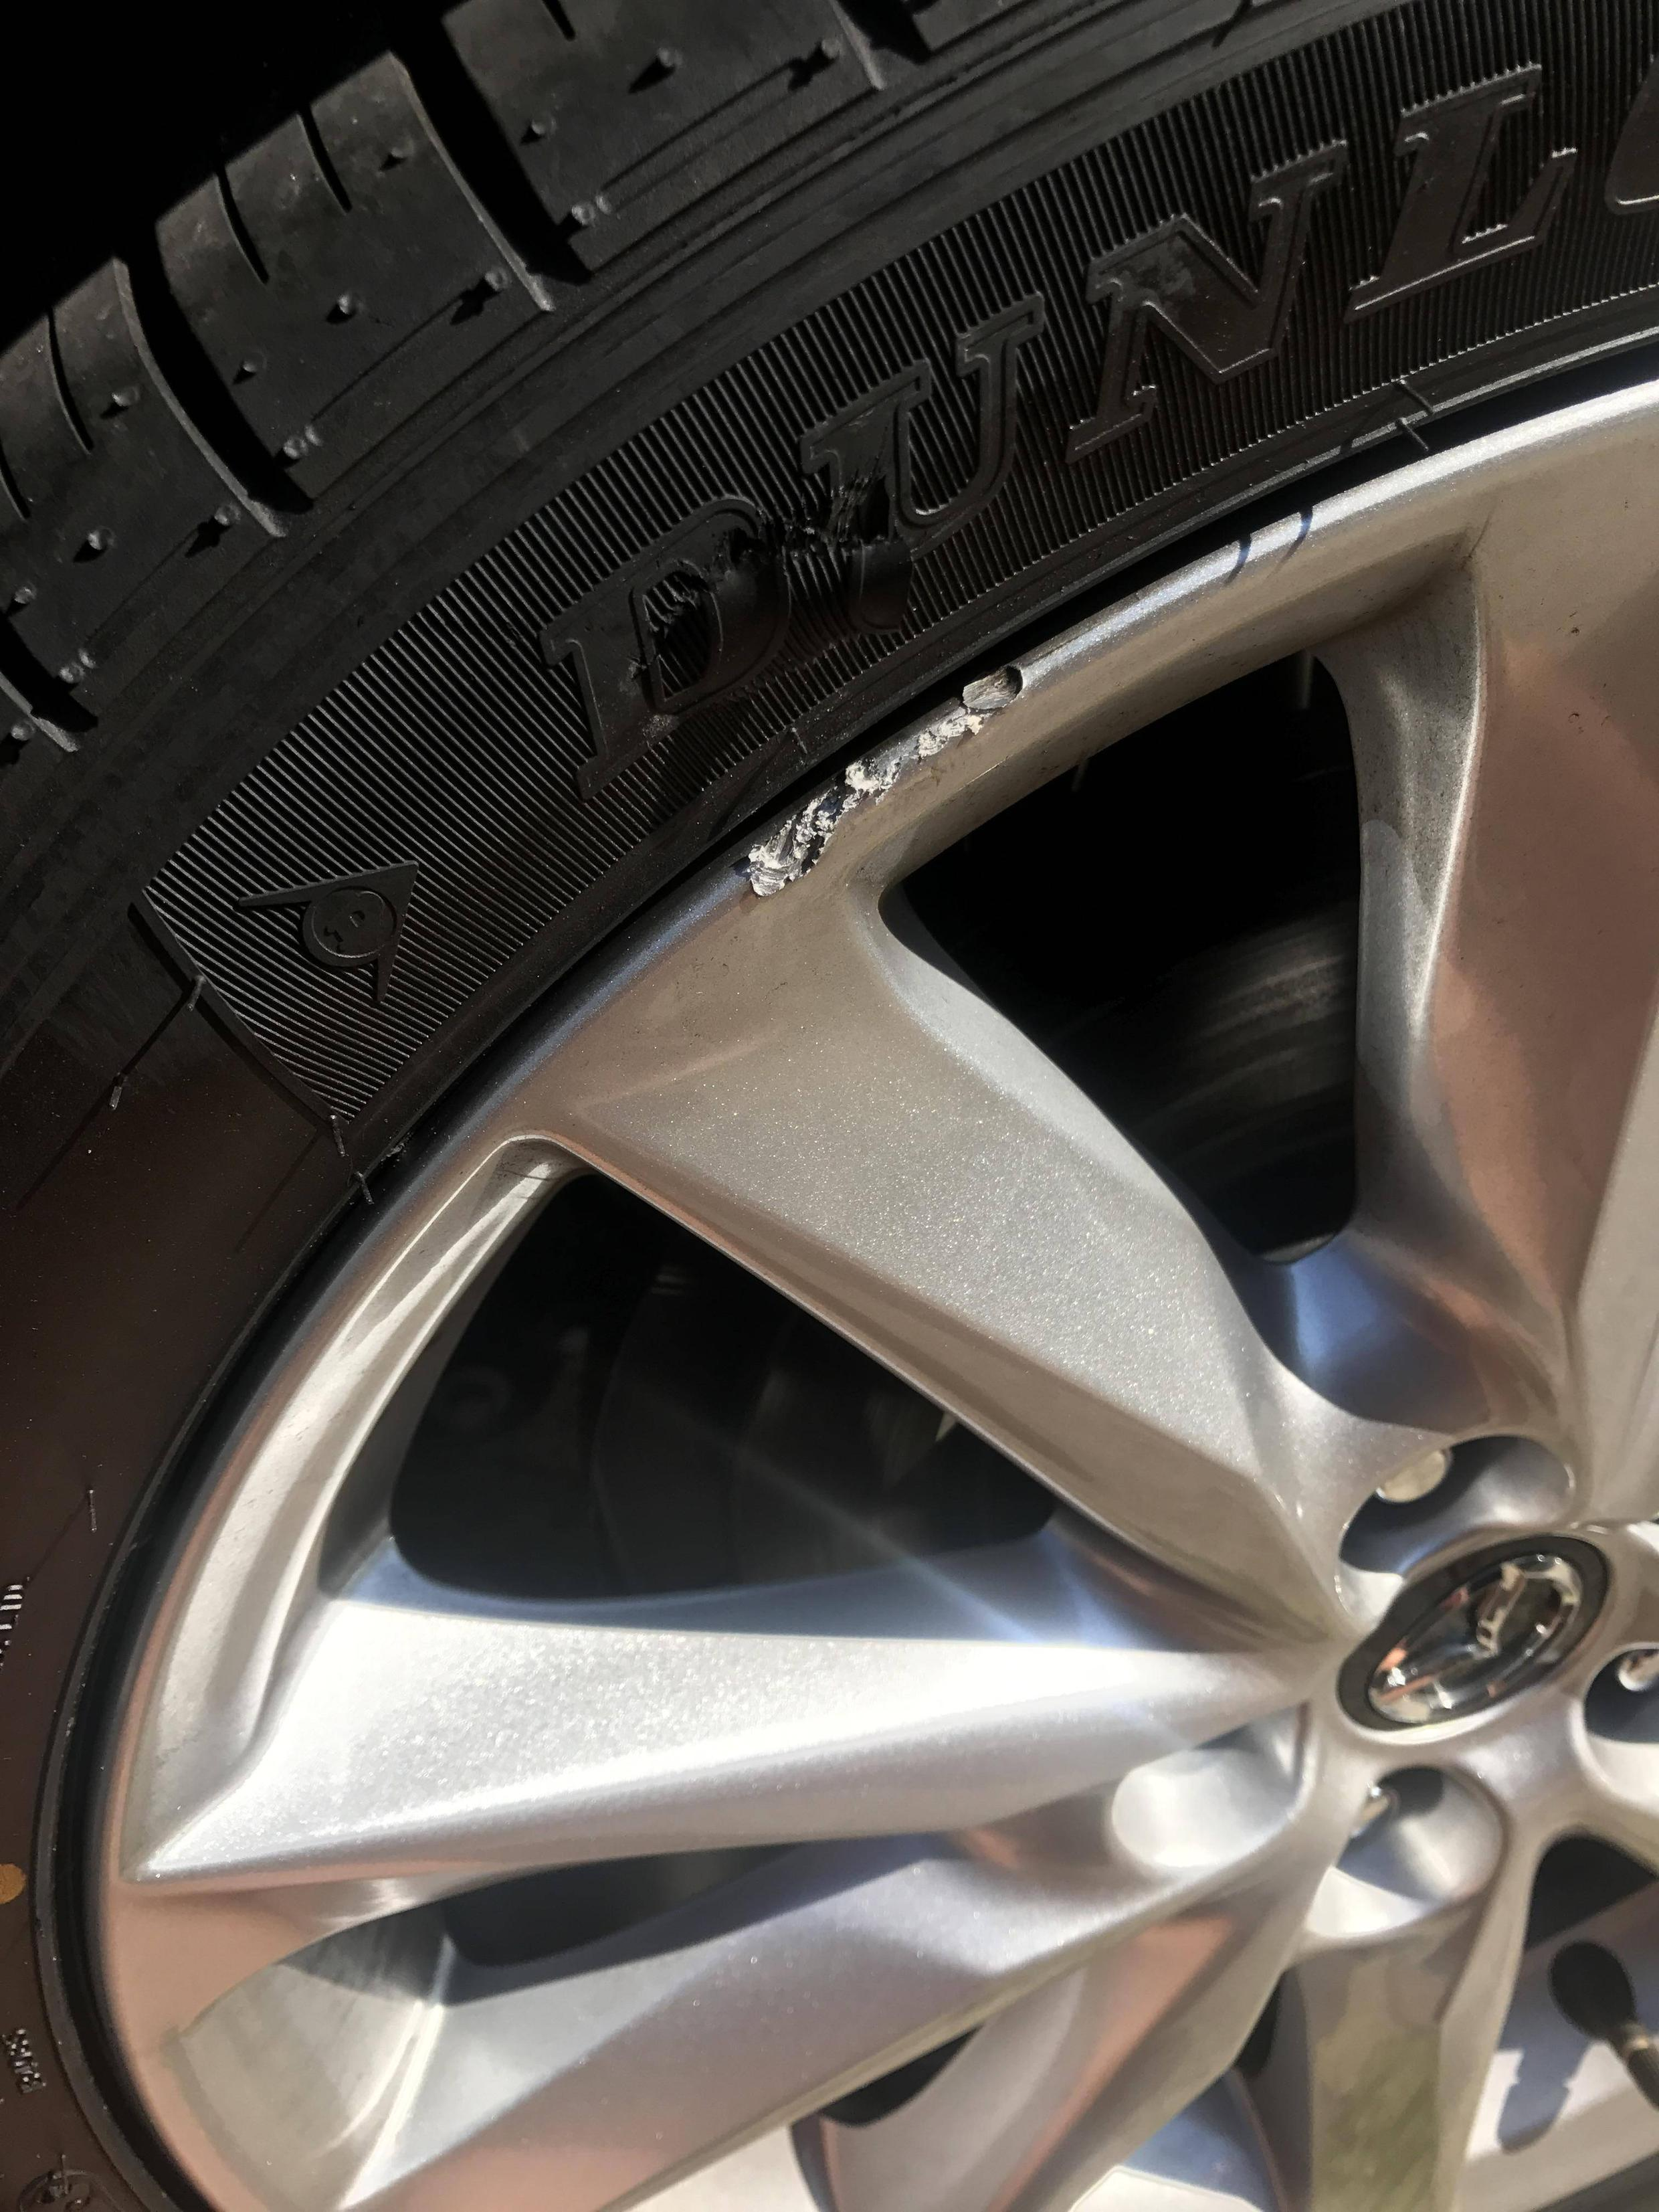 Rim Replacement Cost : replacement, Scratched, Wheel, Should, Leased, Motor, Vehicle, Maintenance, Repair, Stack, Exchange